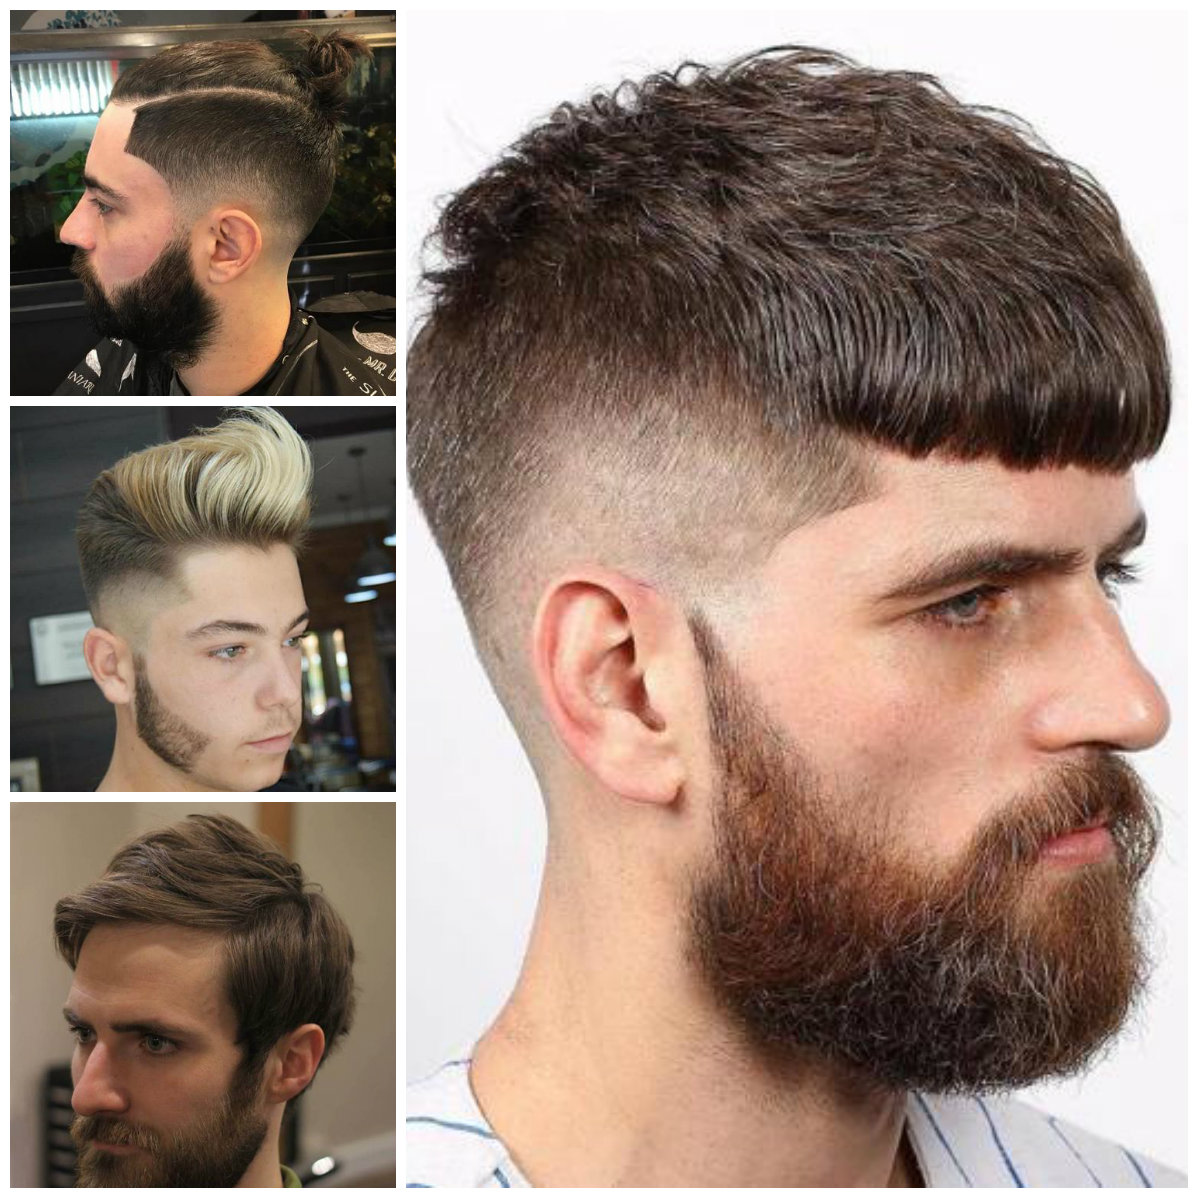 Hairstyle Ideas for Modern Men for 2017